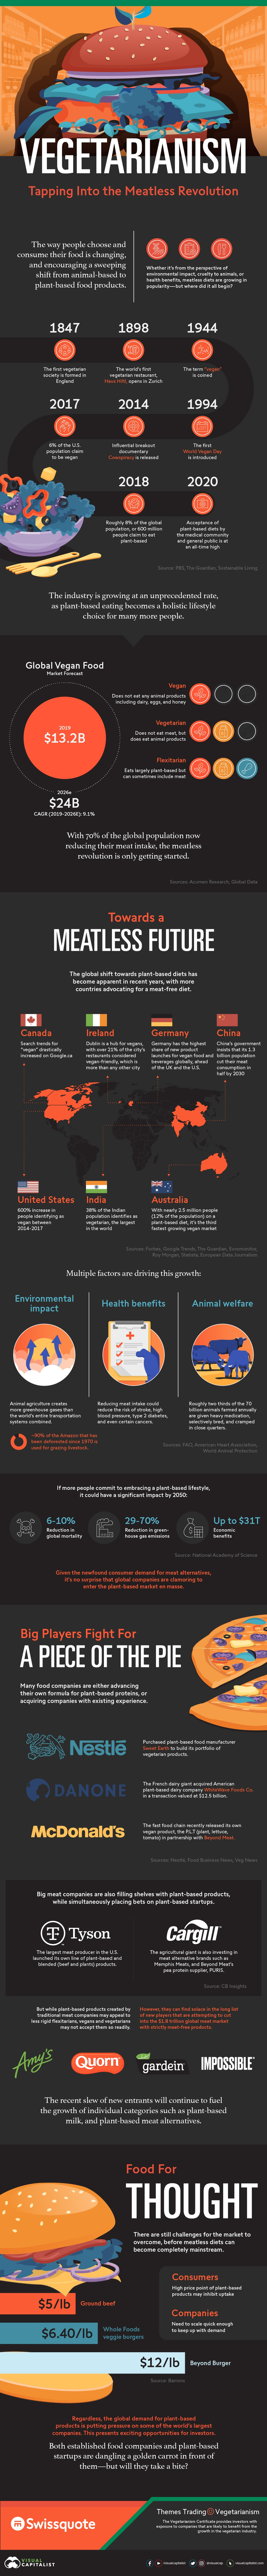 Vegetarianism: Tapping Into the Meatless Revolution #infographic